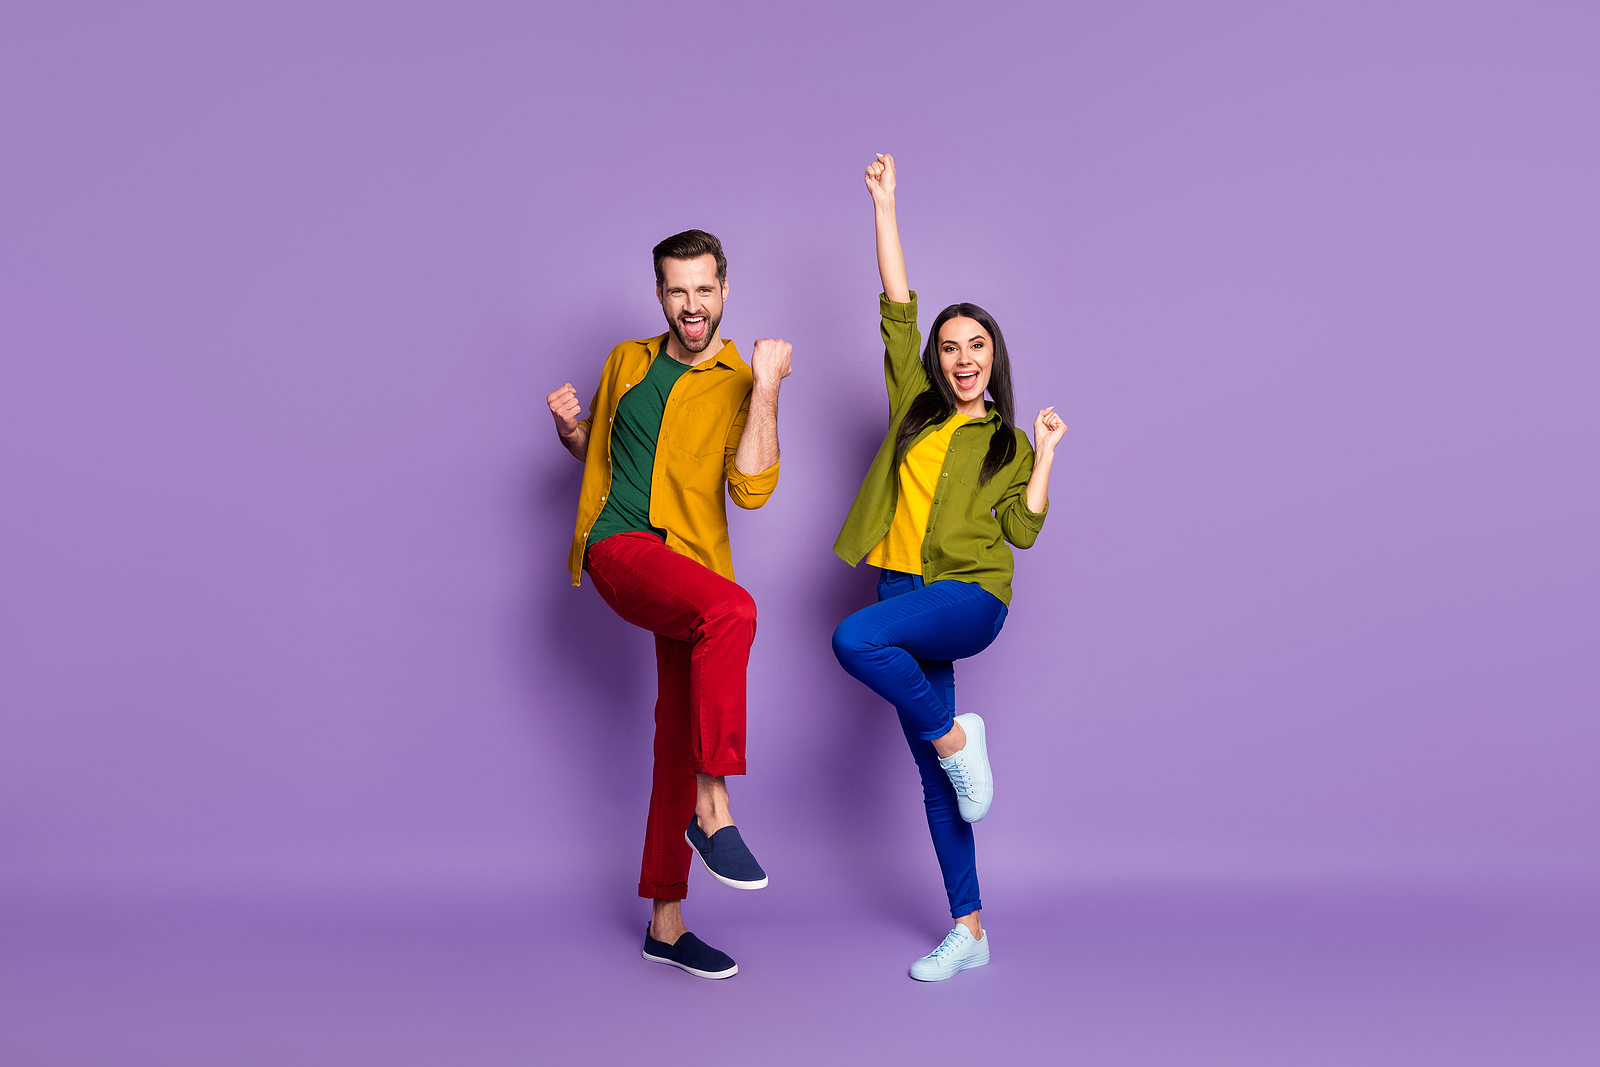 Image of an attractive white man and woman, both wearing colorful colors against a light purple background, both are smiling and have their hands up in the air in excitement.